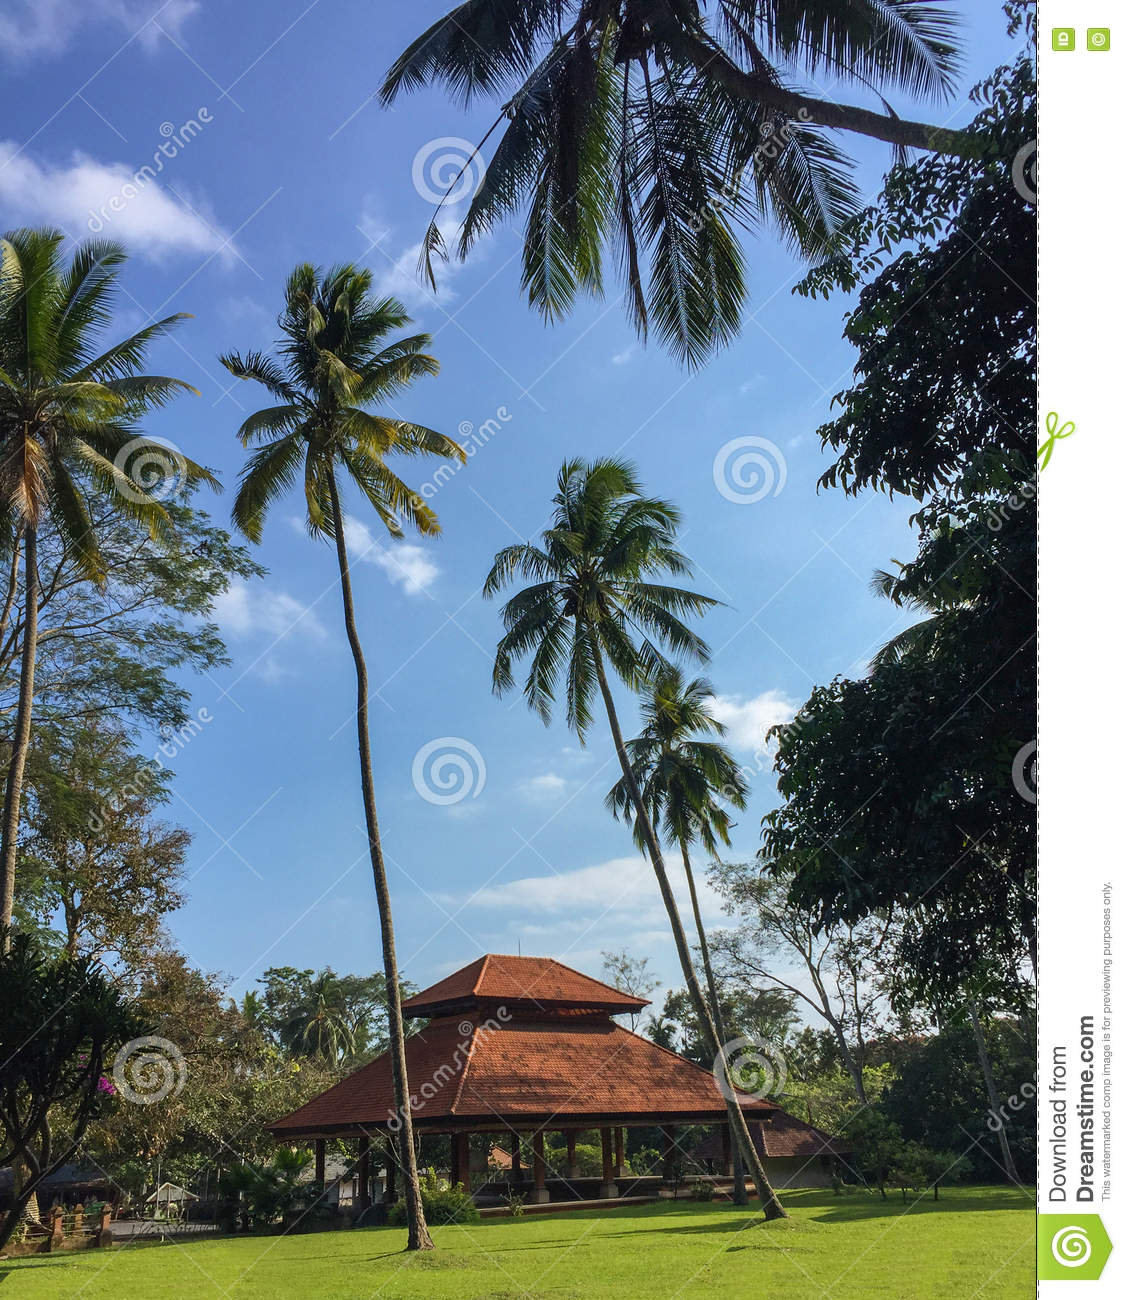 Palm Trees And House In Balinese Style Exotic Landscape